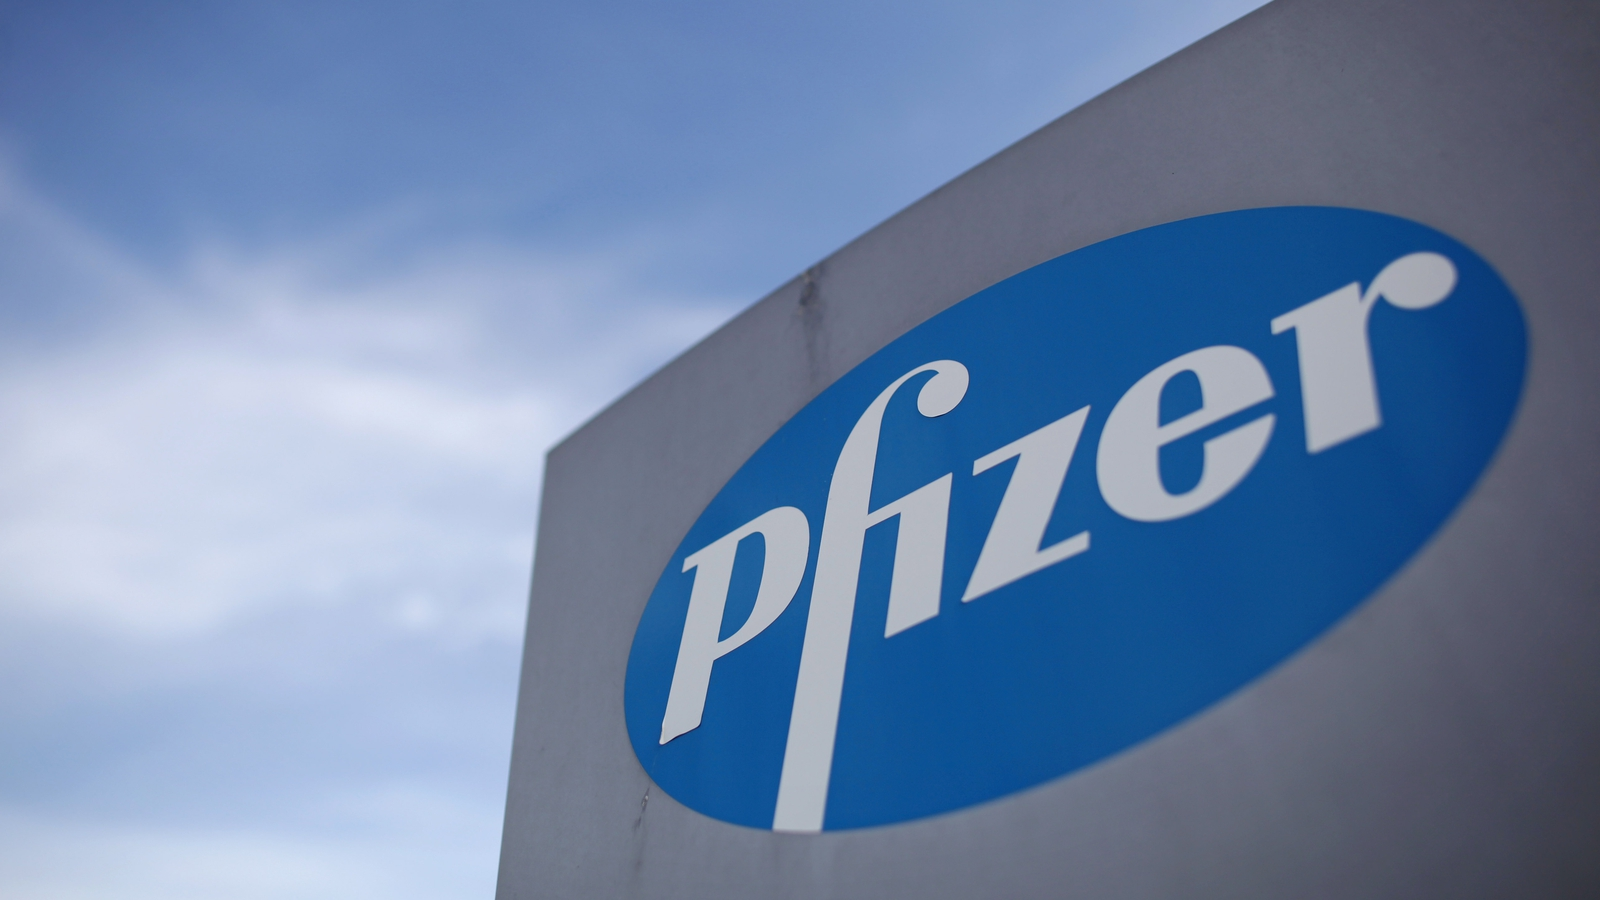 Mylan to combine with Pfizer's off-patent drugs unit